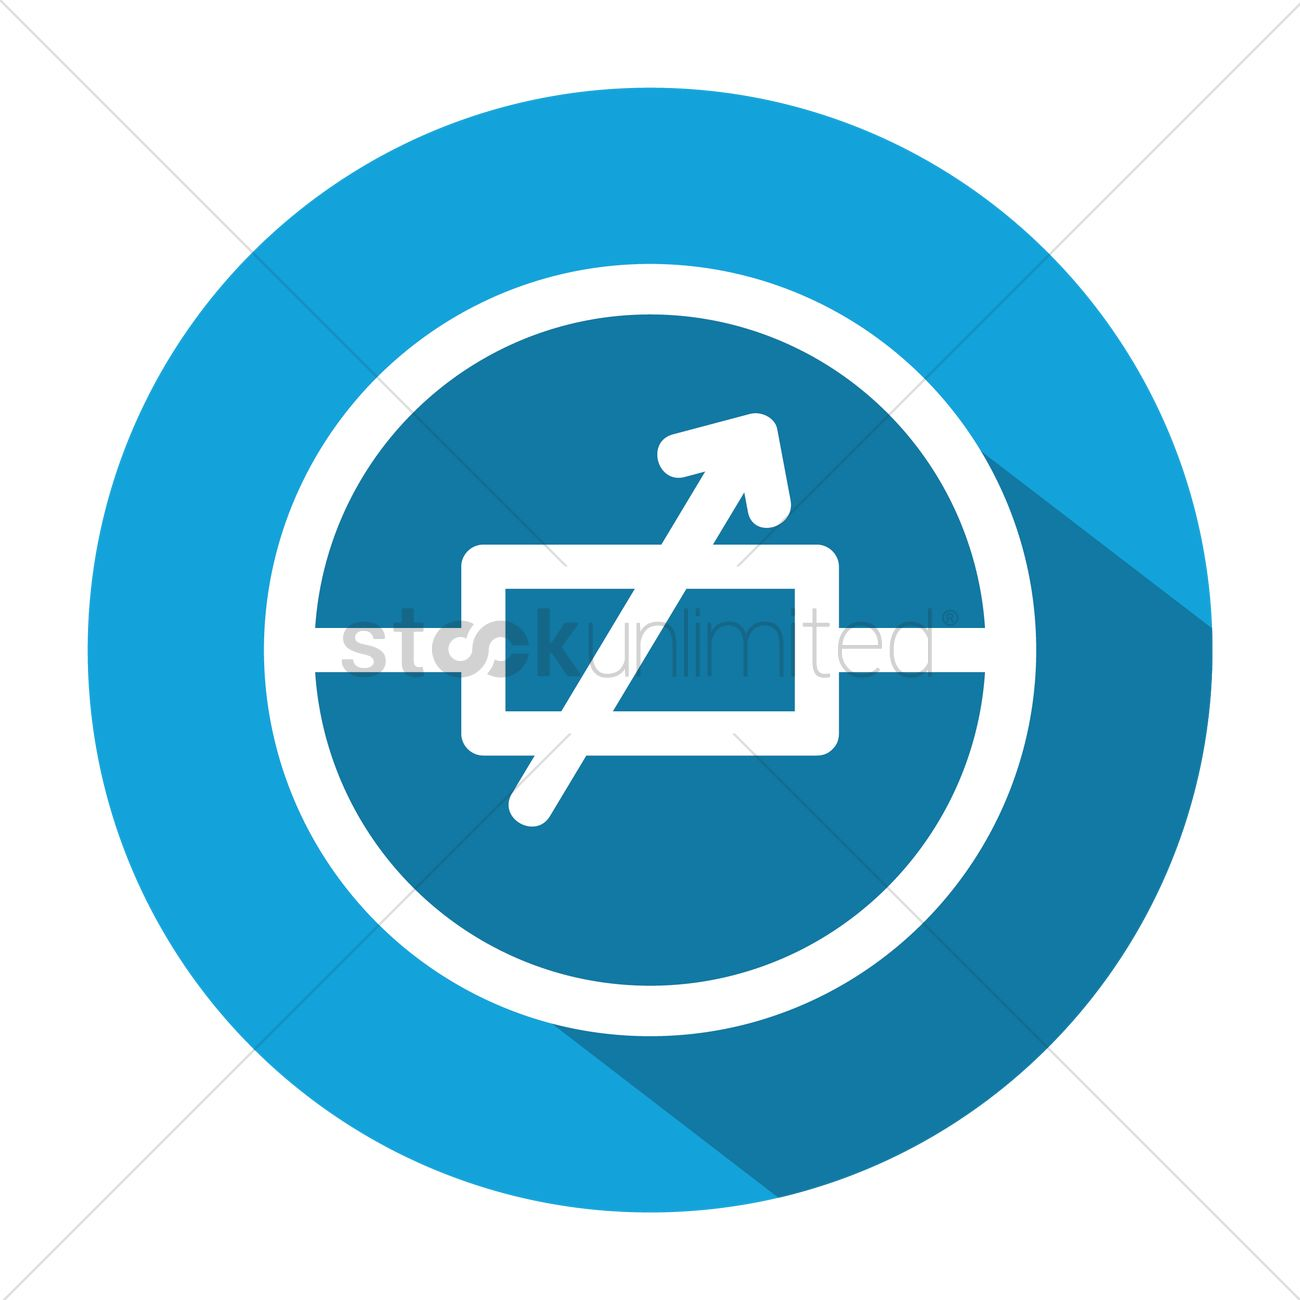 Electric Circuit Symbol For Variable Resistor Vector Image 1248231 Graphic